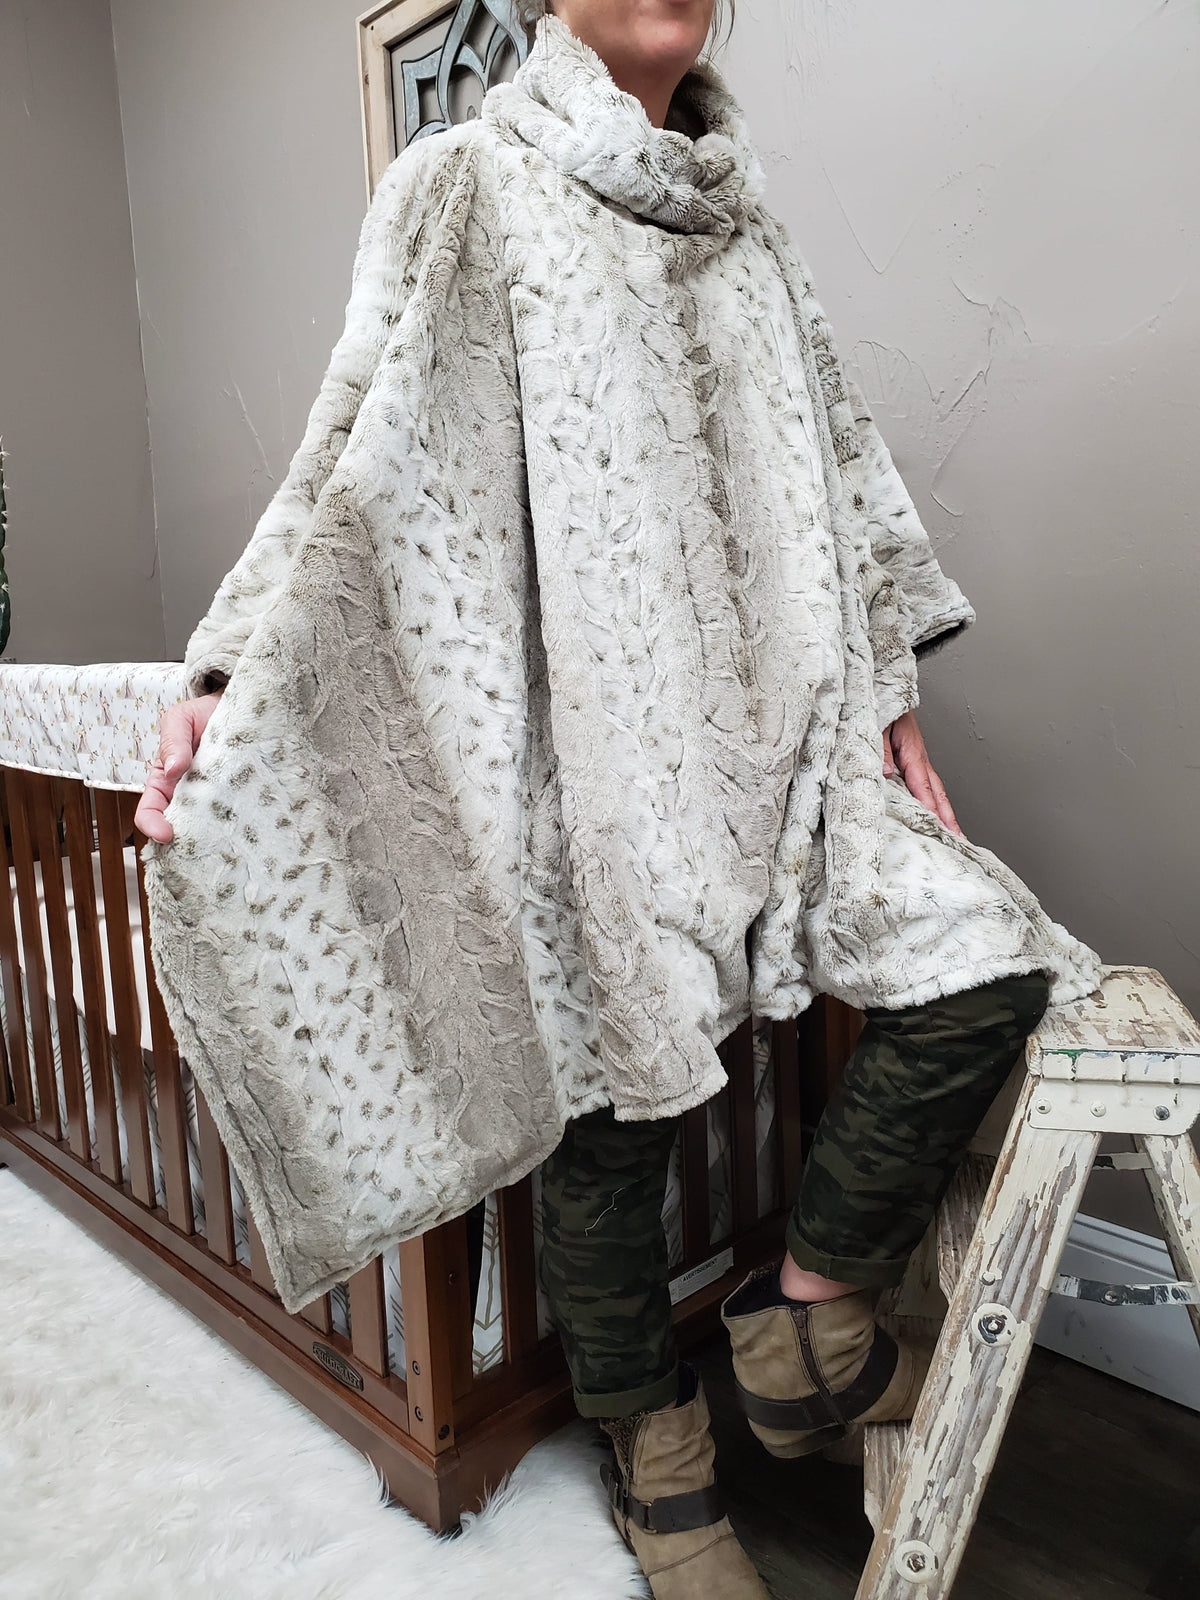 Ladies Poncho - Lynx Minky with heather gray lining